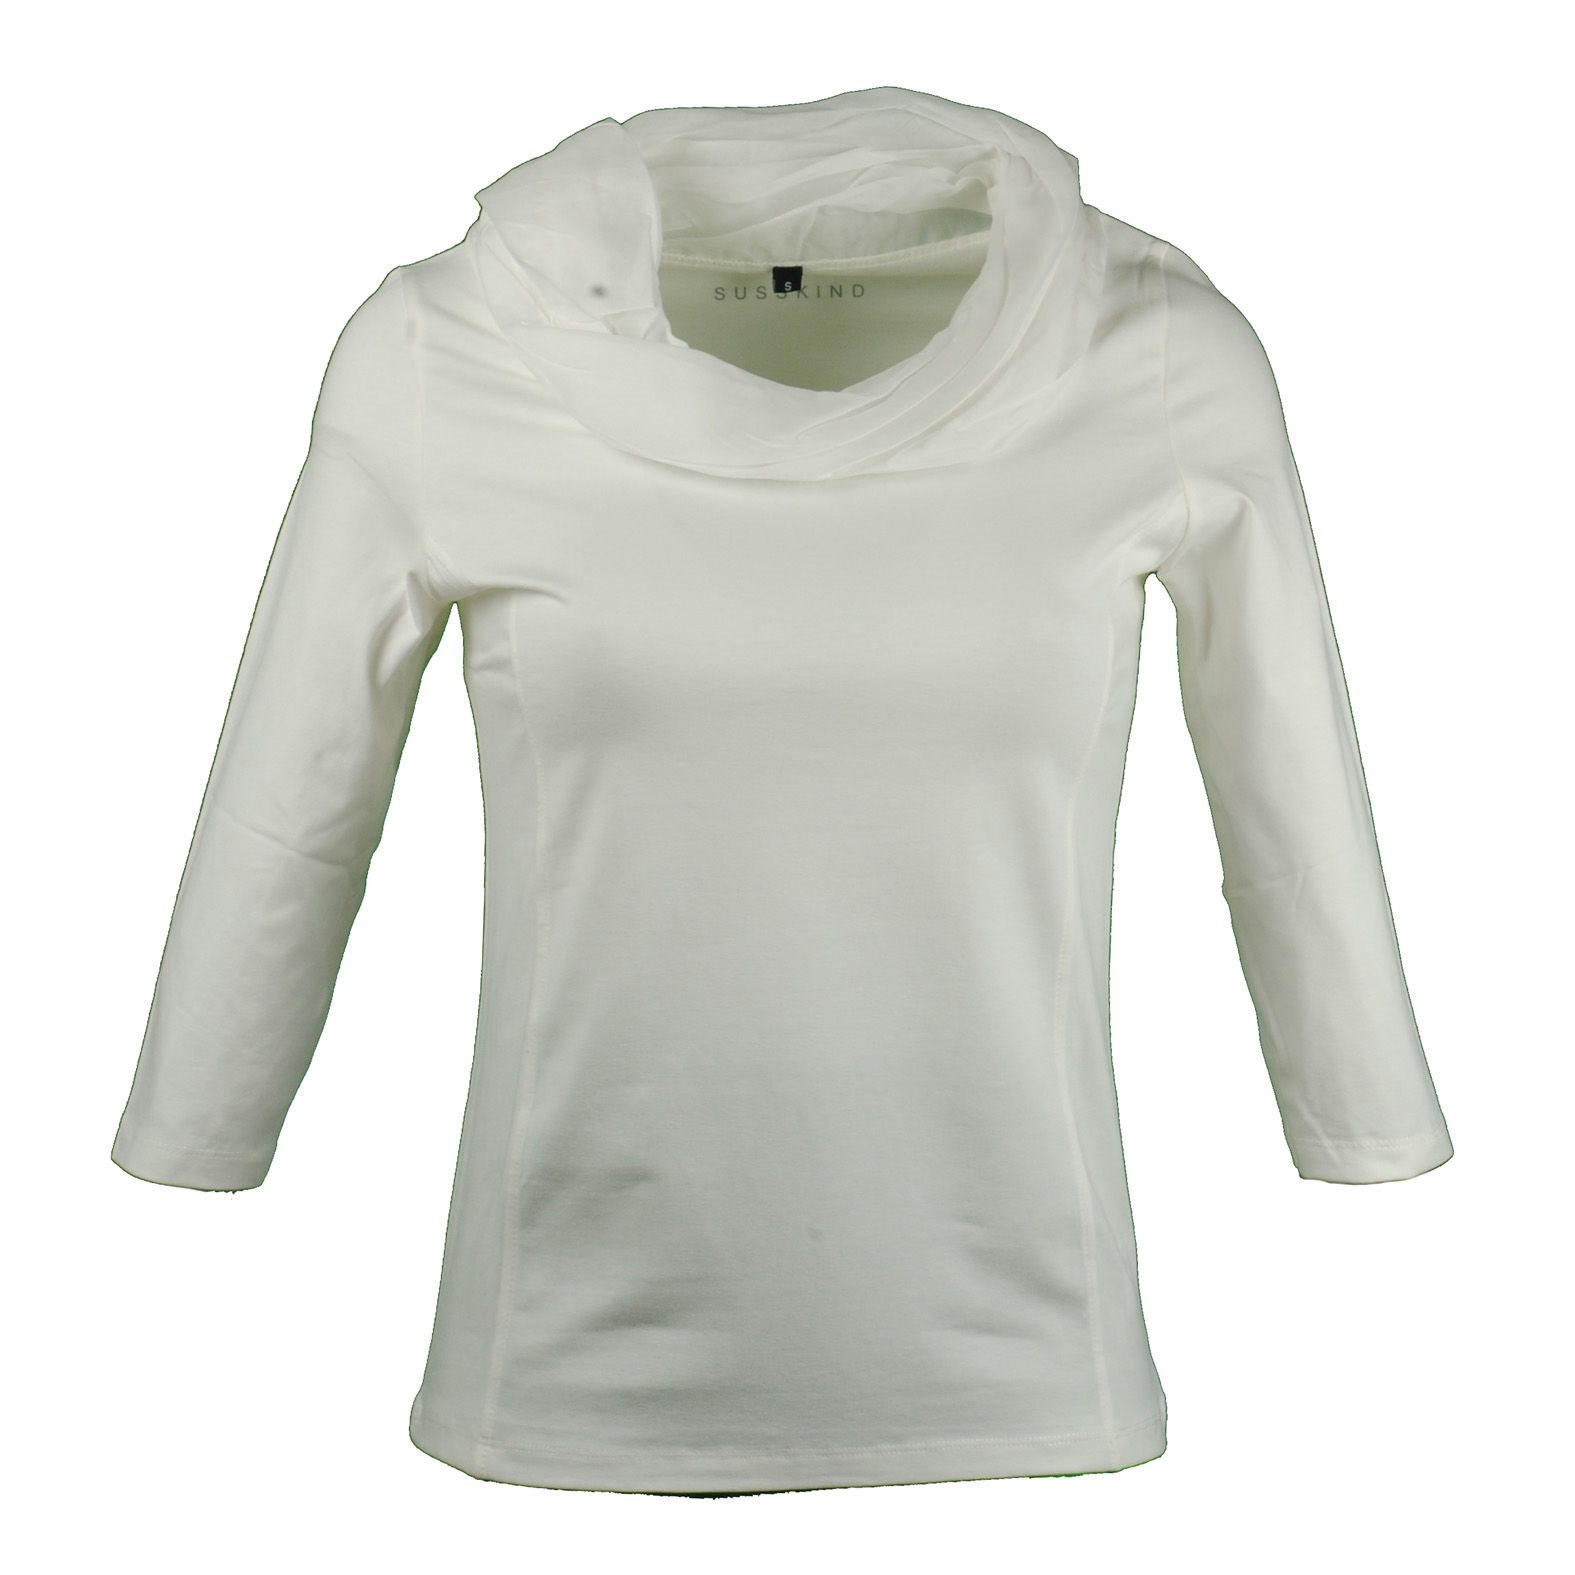 TOP OFFWHITE SUSSKIND